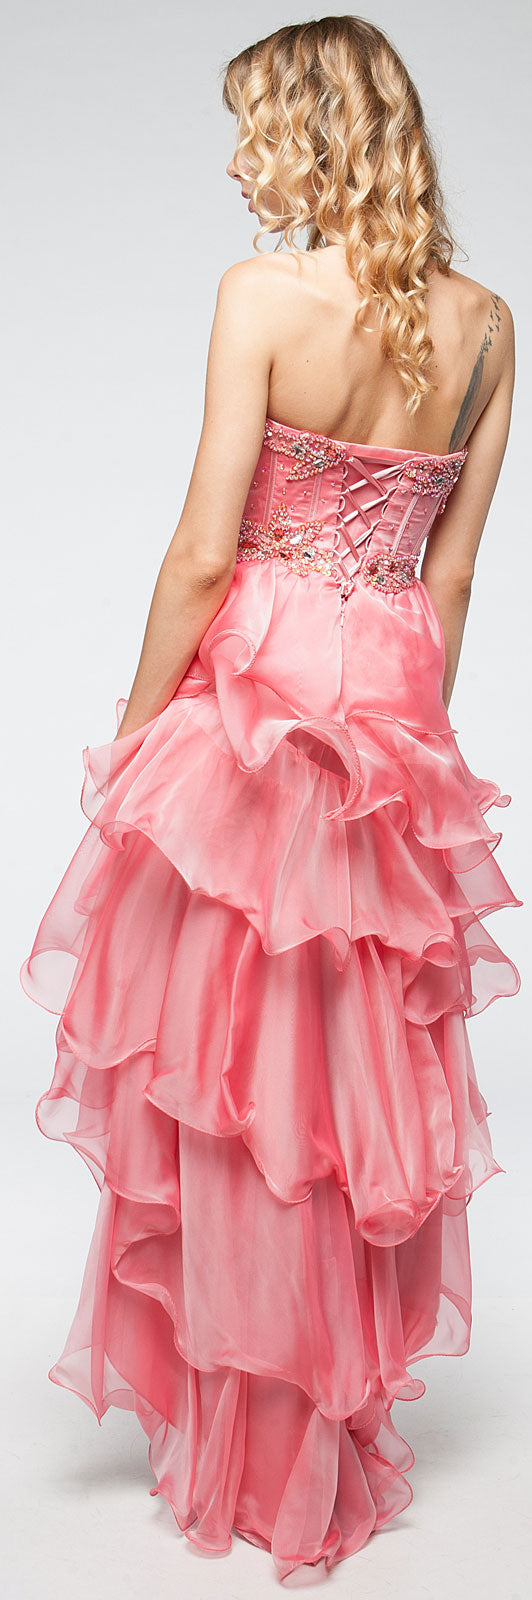 Image of Strapless High-low Cocktail Prom Dress With Ruffled Skirt back in Coral